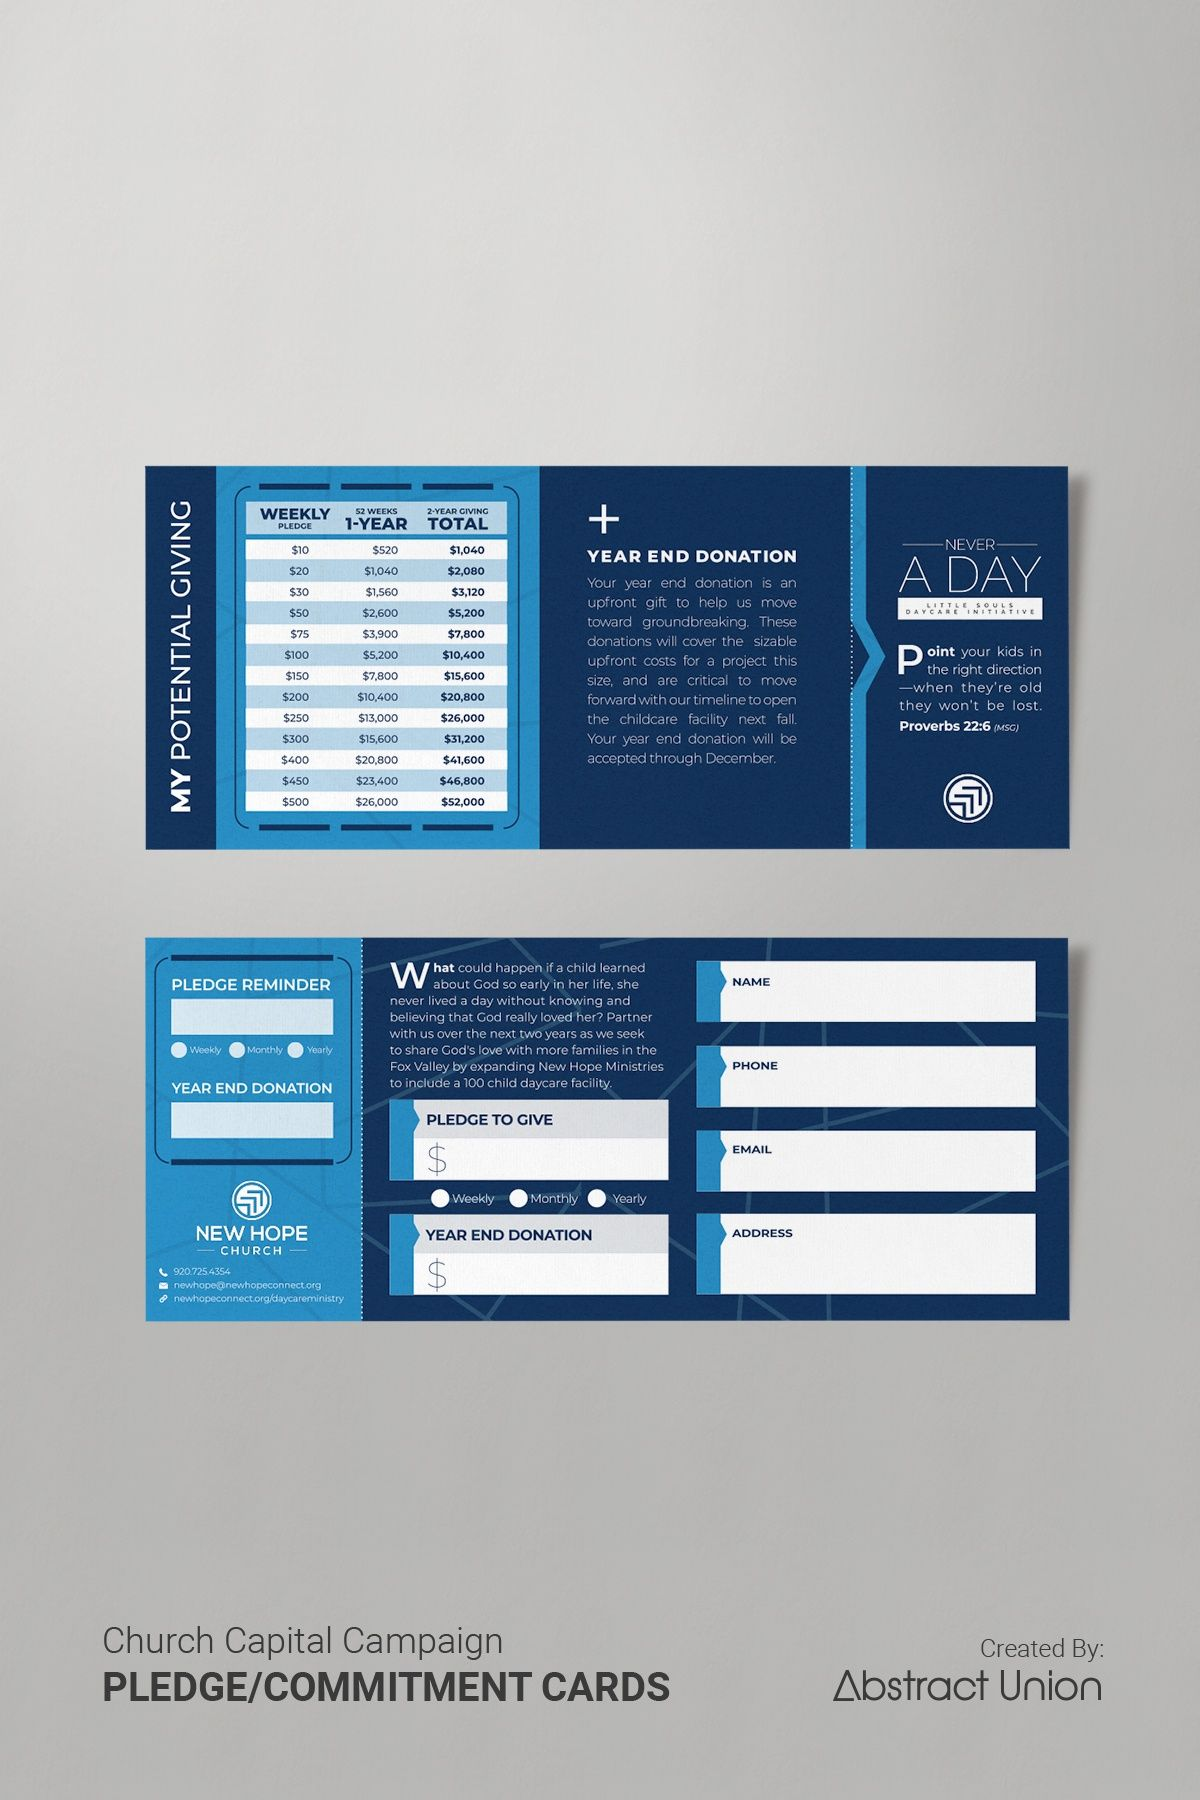 Clean Modern Pledge Card Design For Church Stewardship Campaign Church Capital Campaign Capital Campaign Pledge